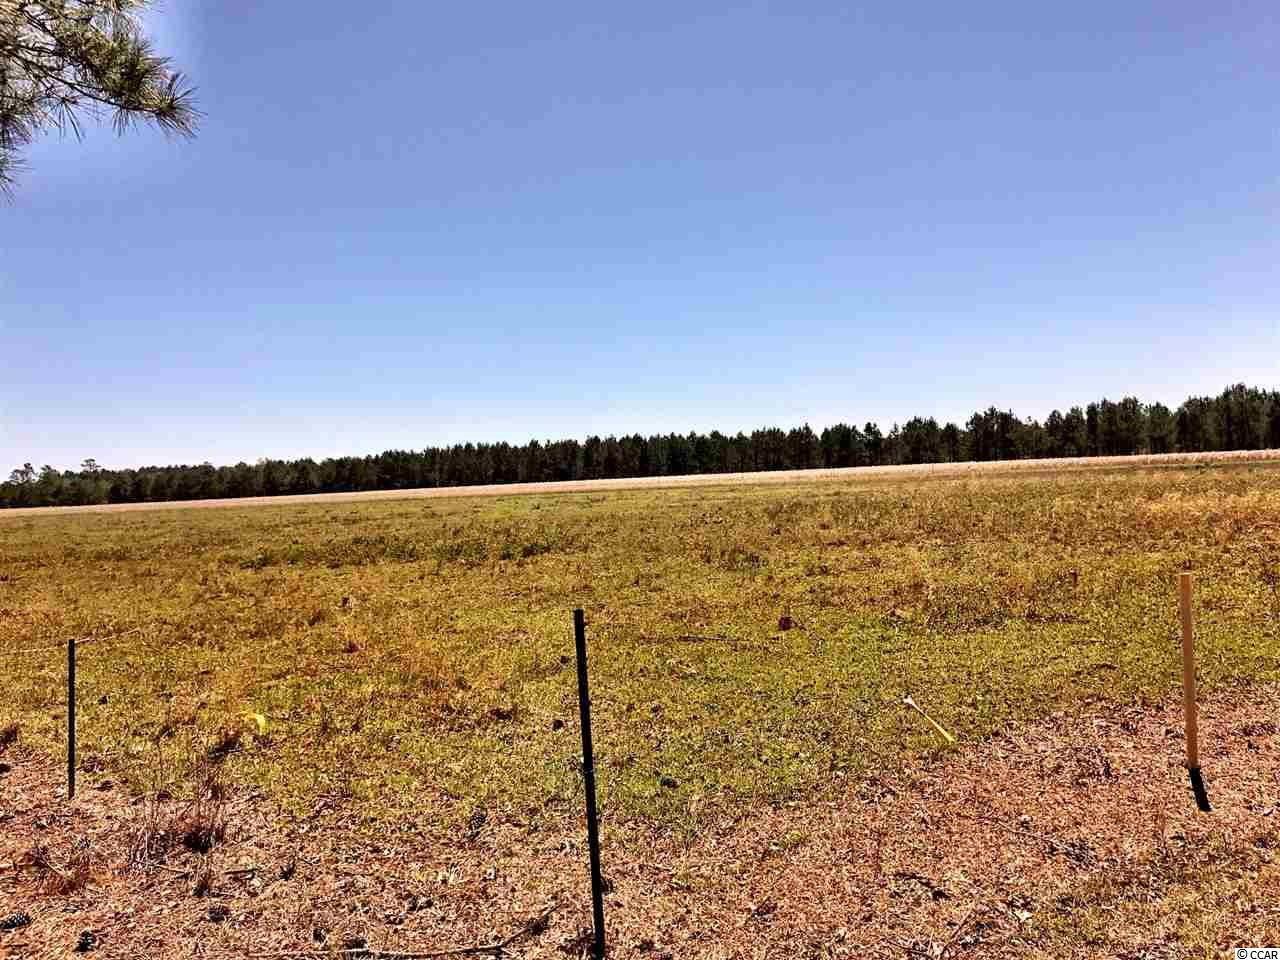 Acreage for Sale at 6490 Pauley Swamp Road 6490 Pauley Swamp Road Conway, South Carolina 29527 United States